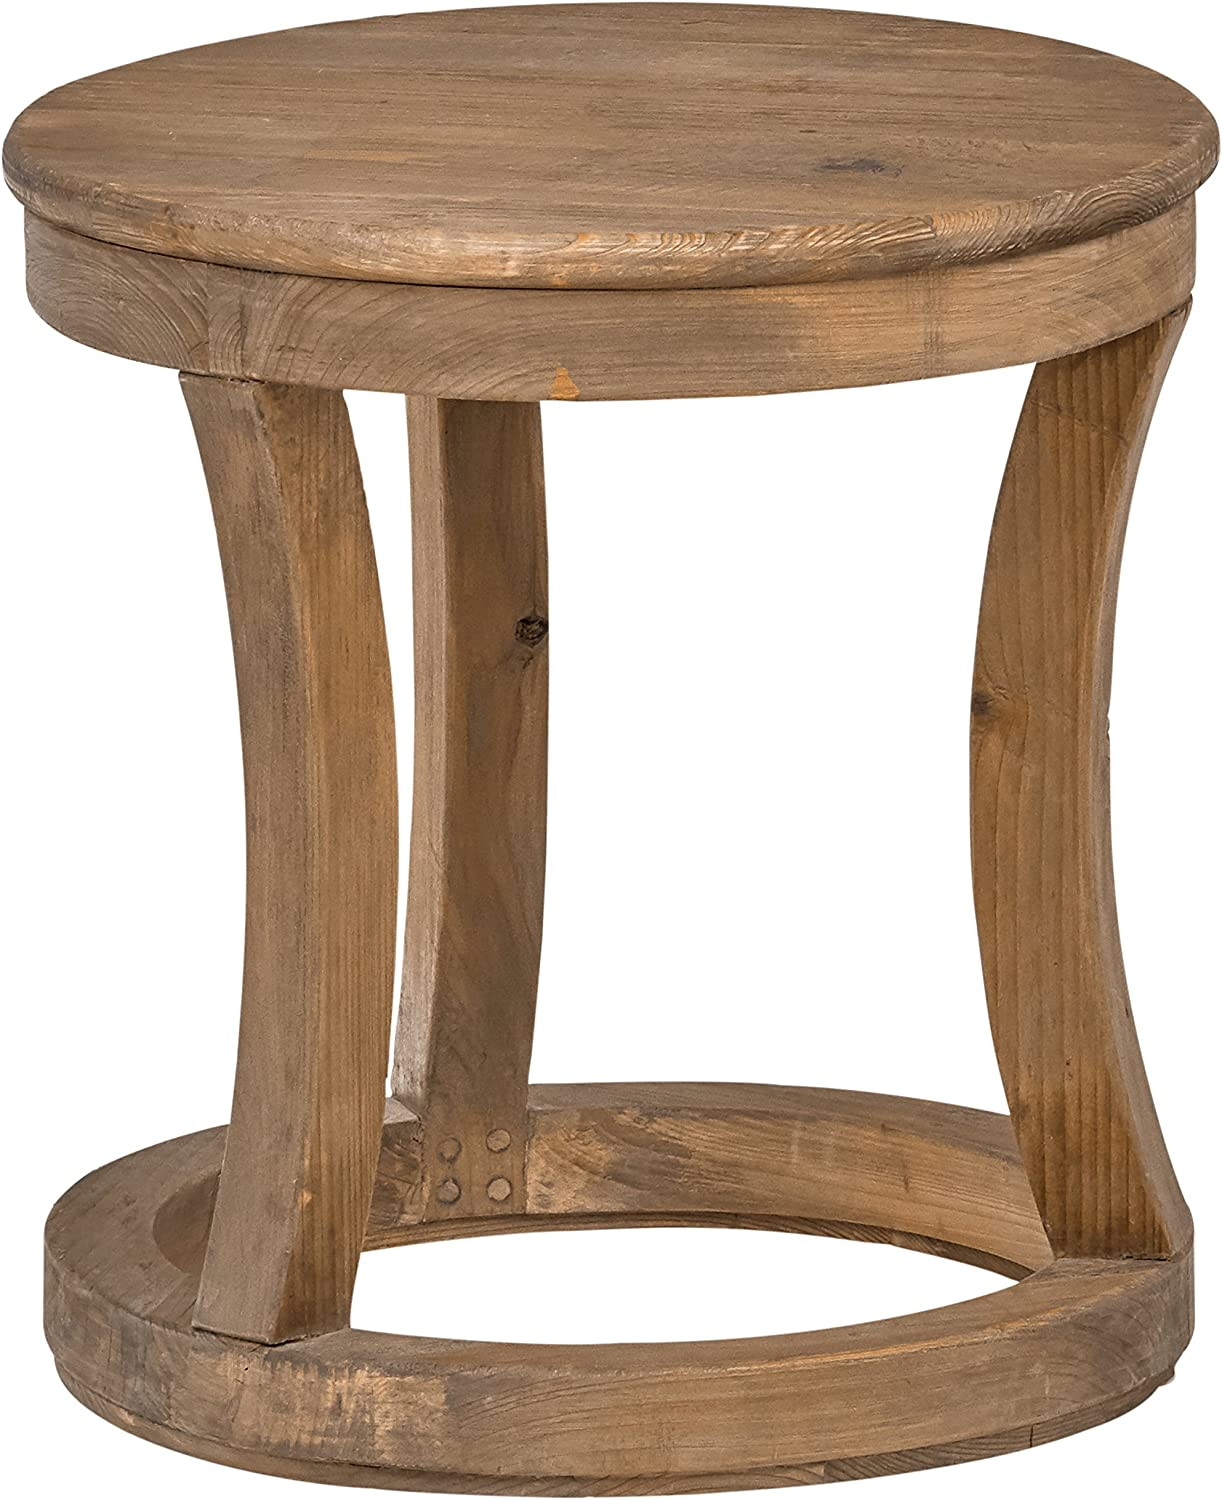 Stone & Beam Modern Rustic Reclaimed Elm Side Table, 17  W, Natural